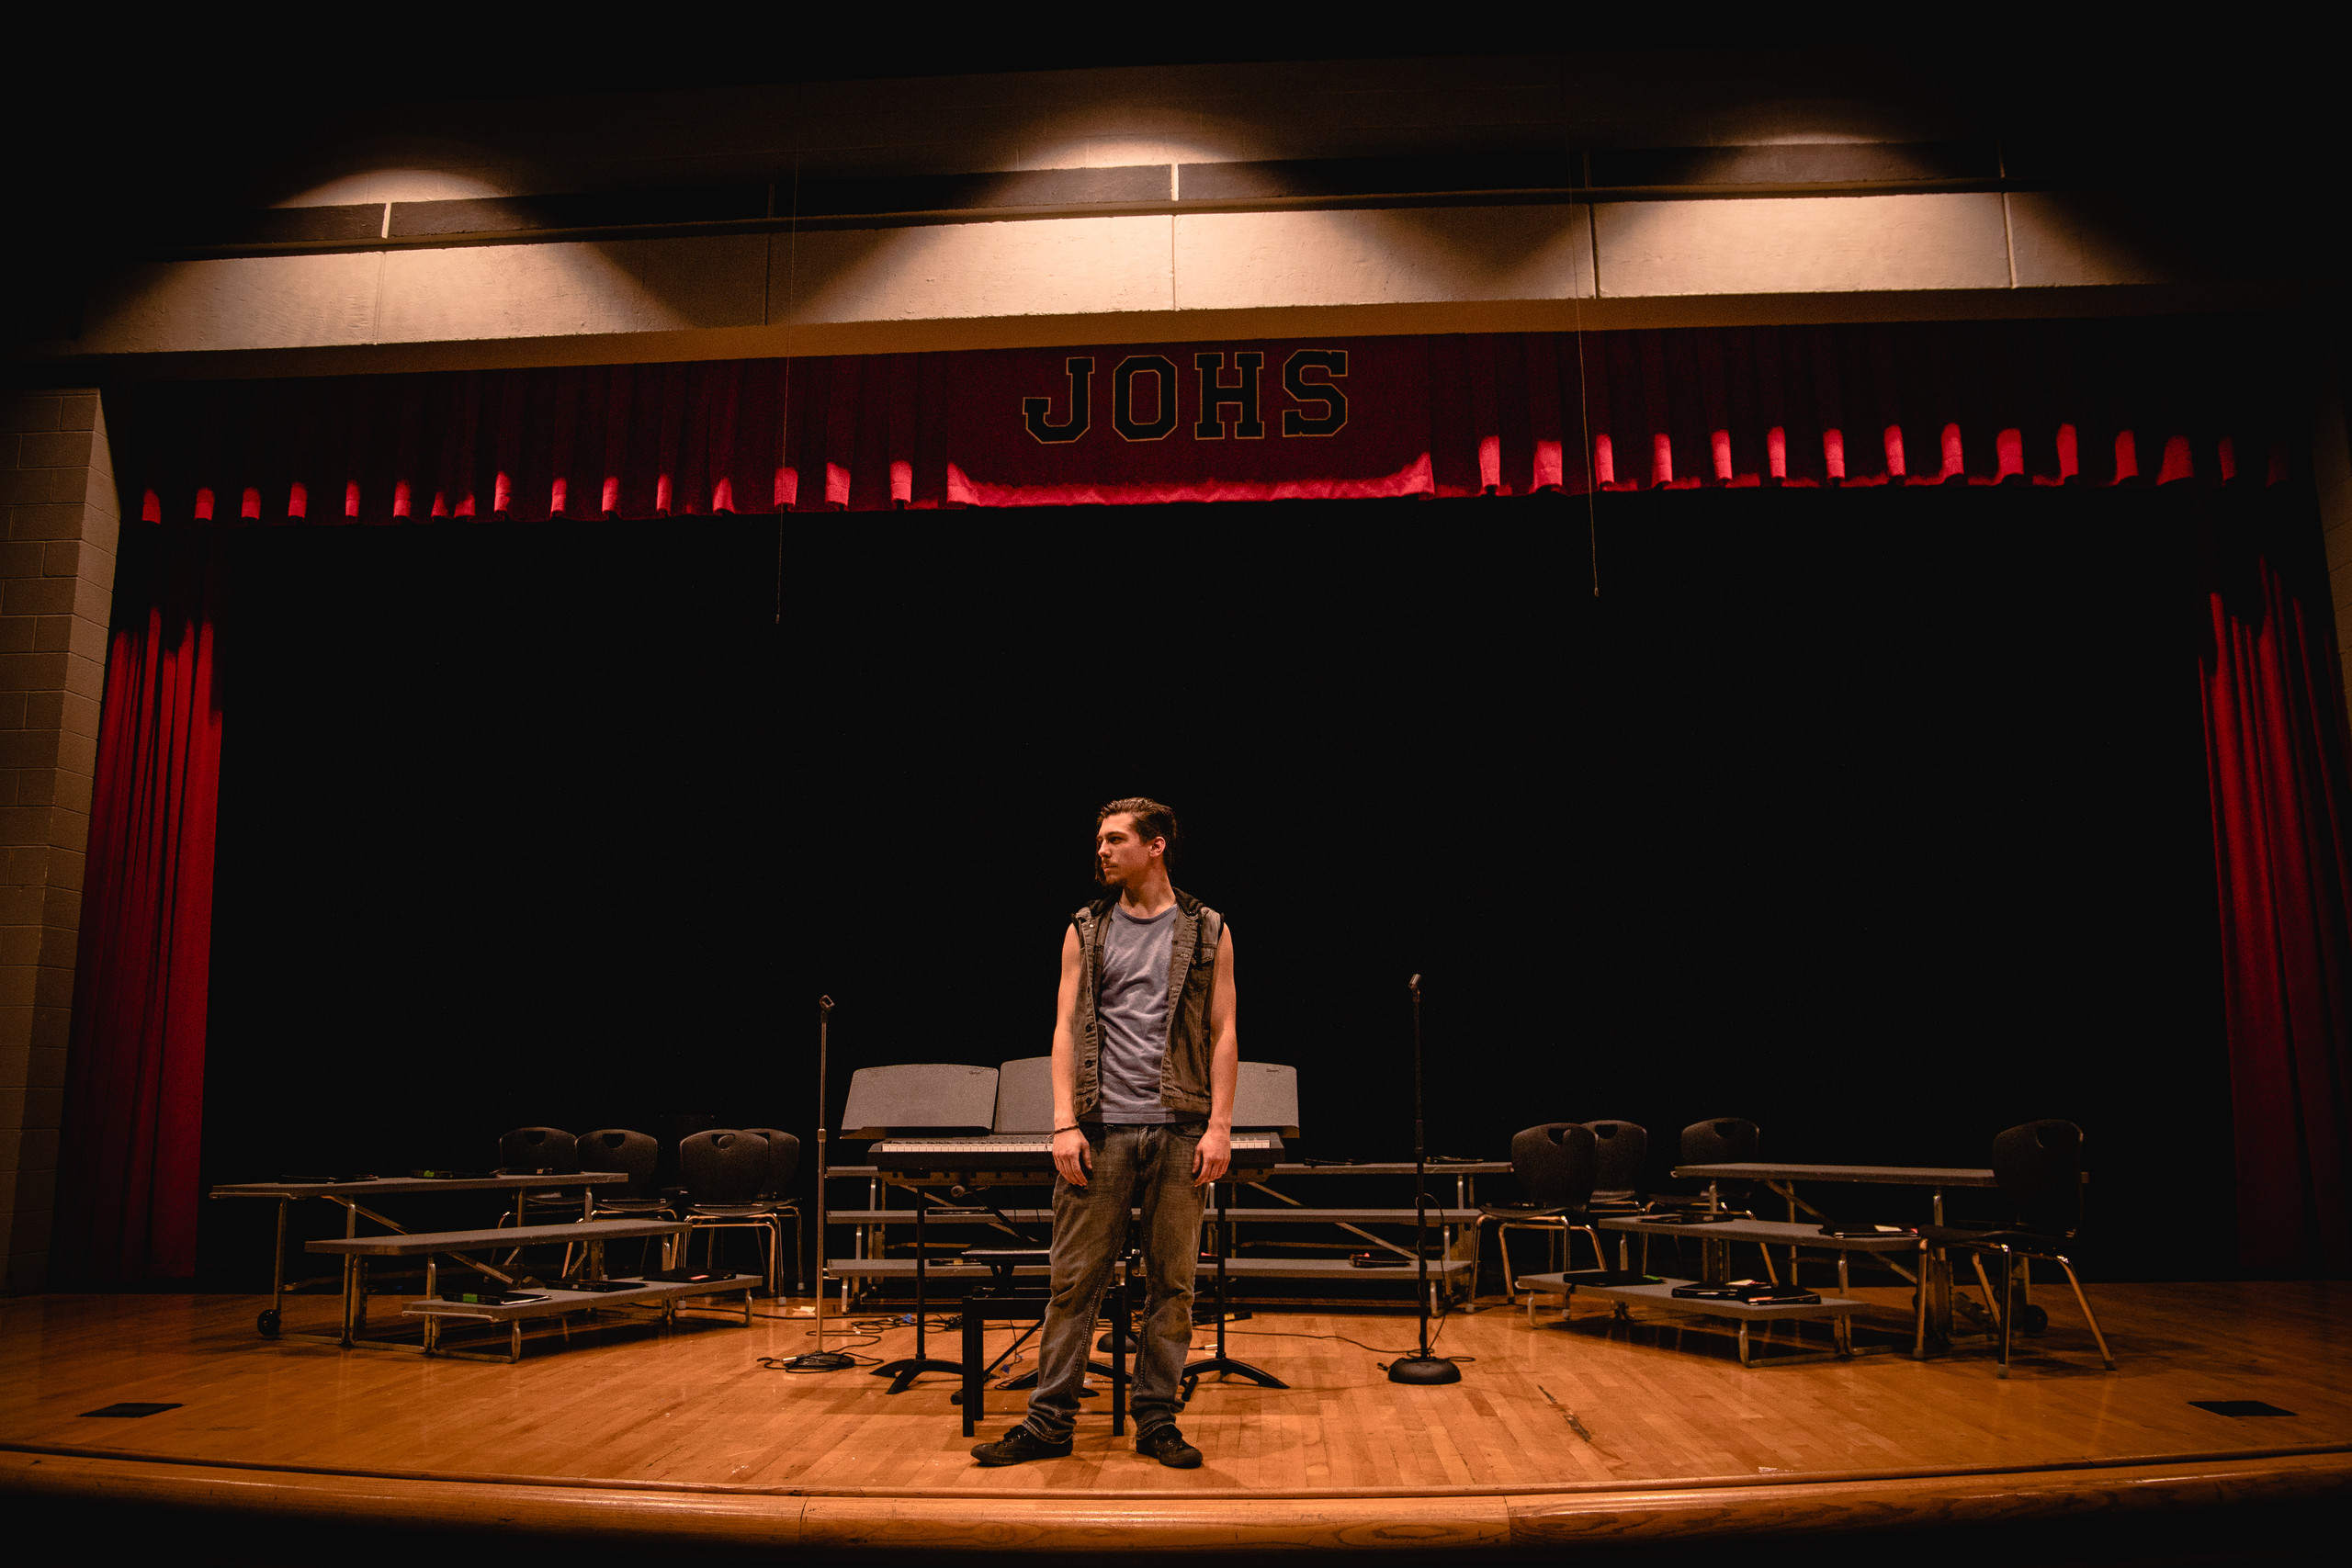 A high school senior boy poses on an empty theater stage.